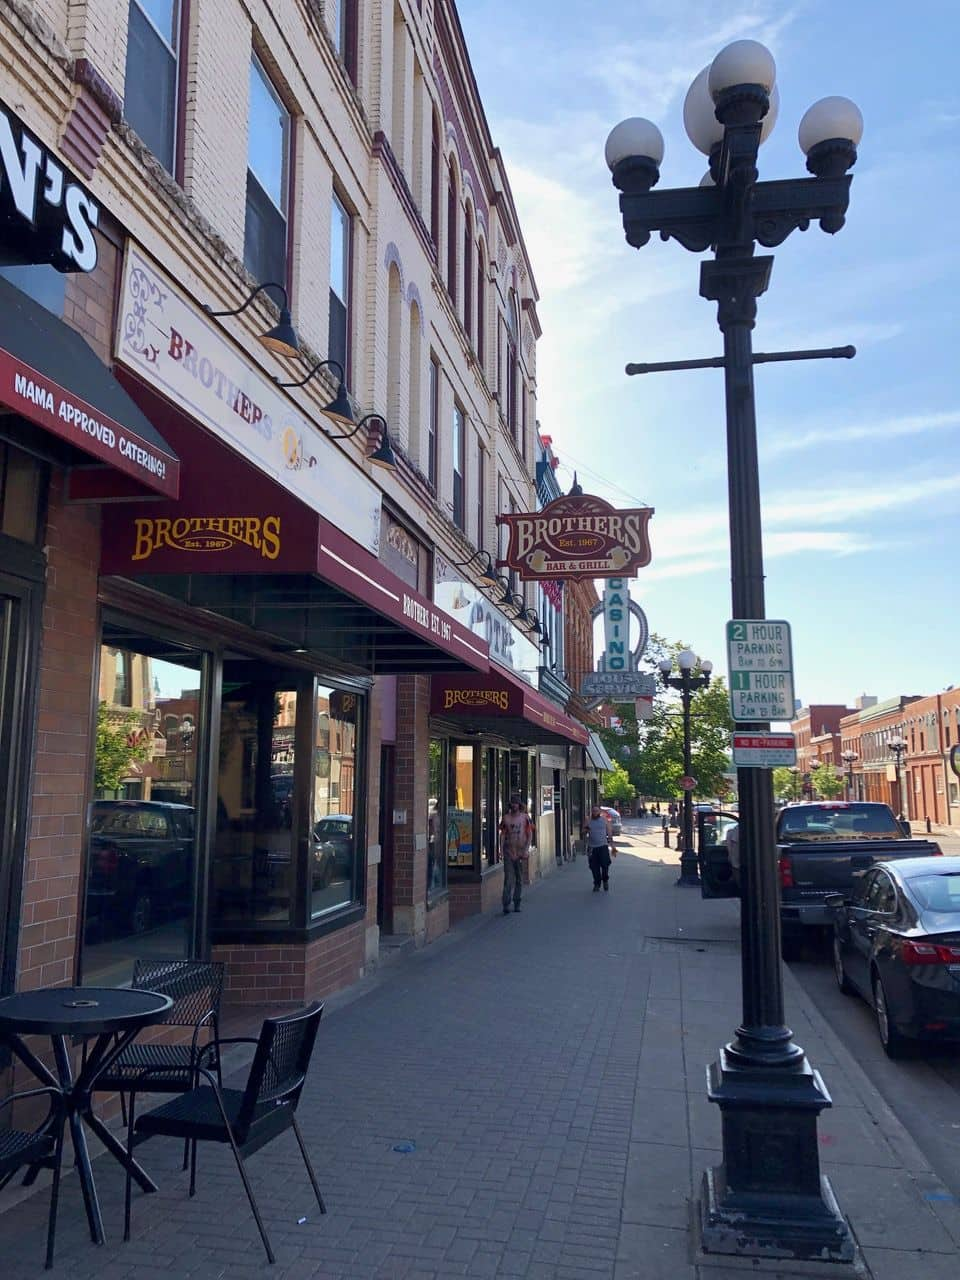 A wide shot of series of storefronts with restaurants and other businesses.